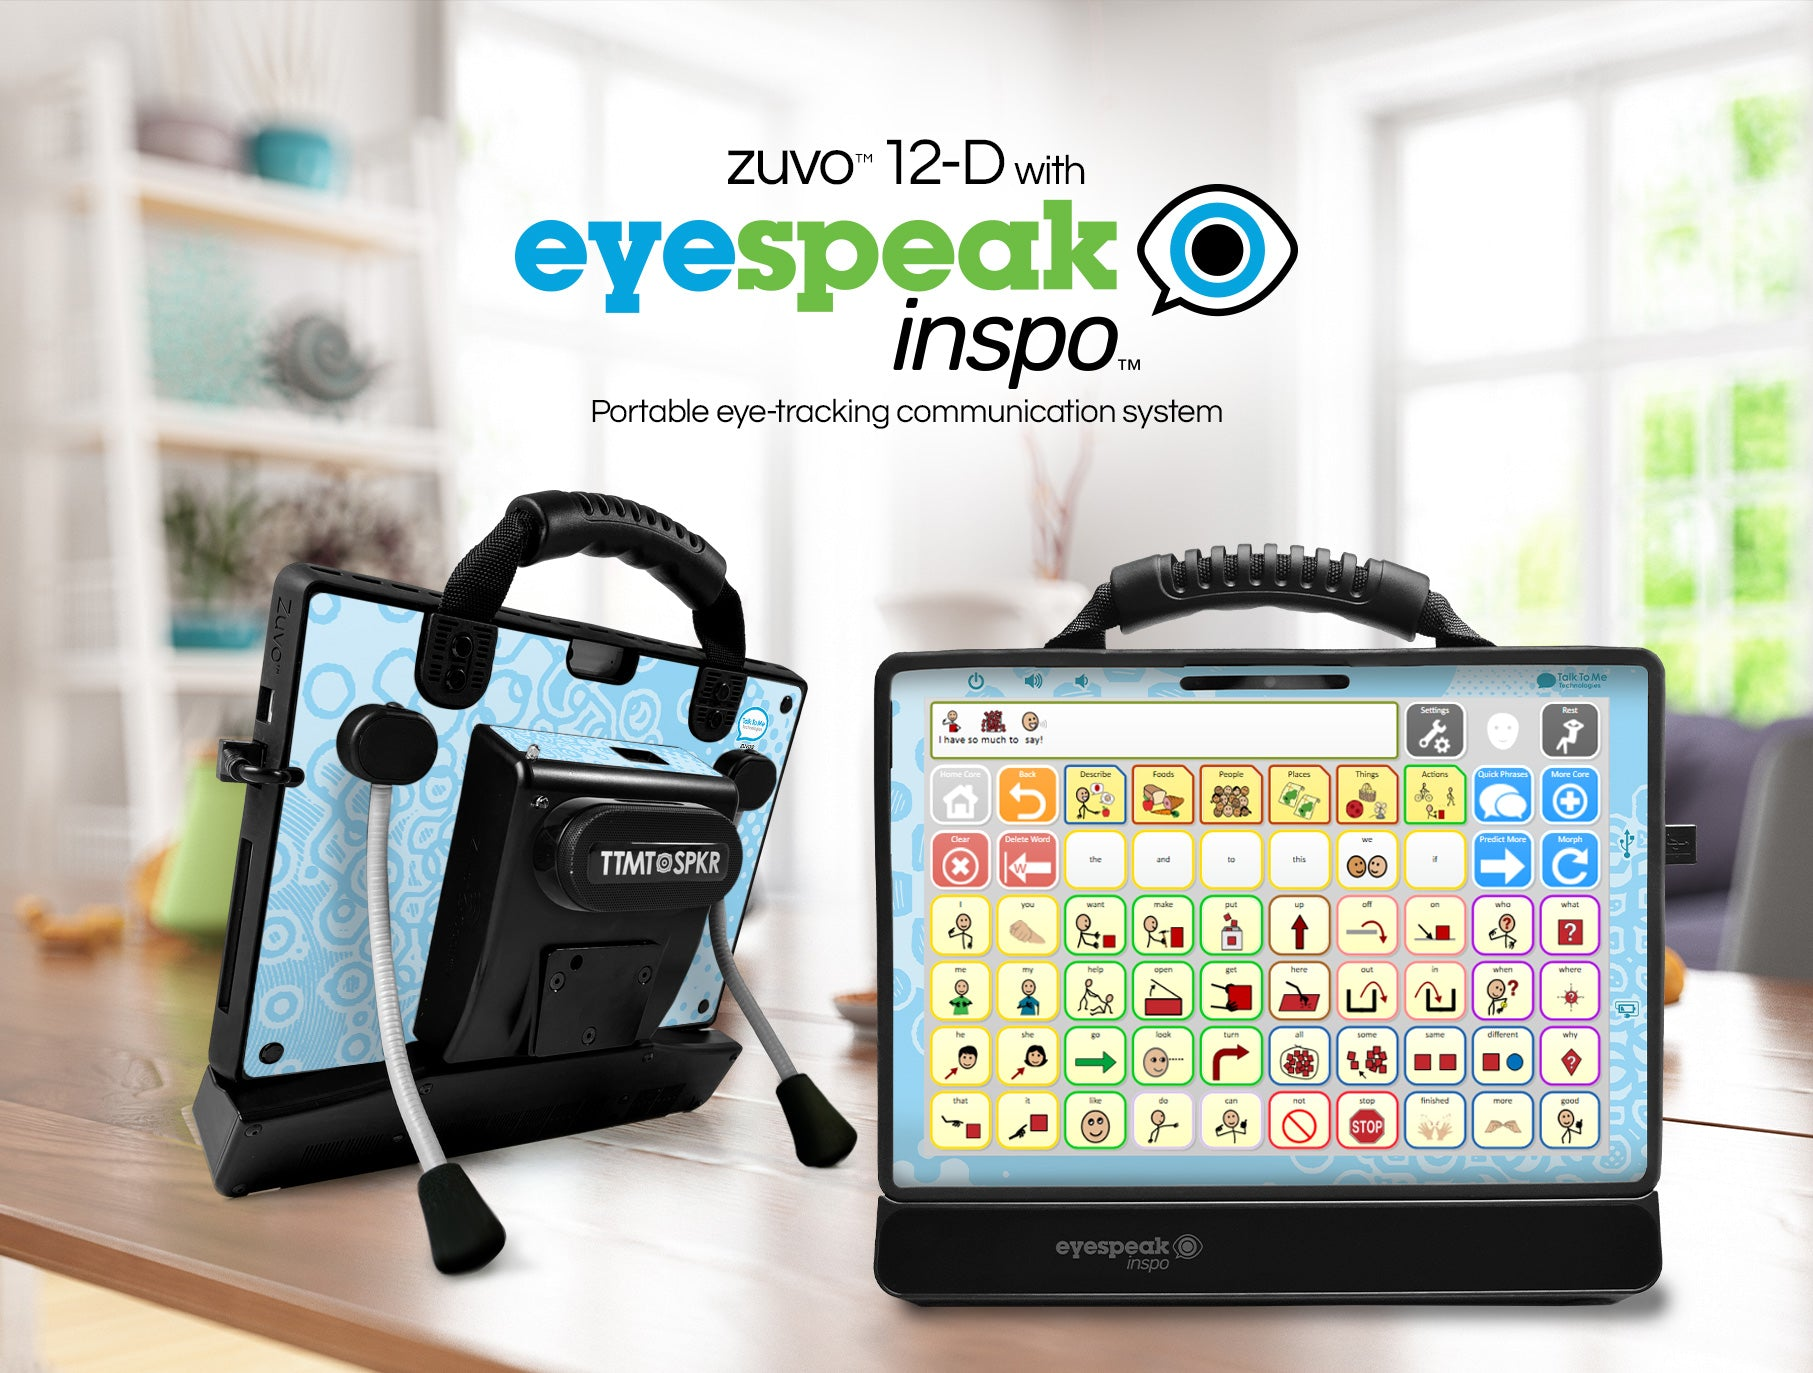 Image of zuvo 12-D speech generating device with eyespeak inspo and flexstand